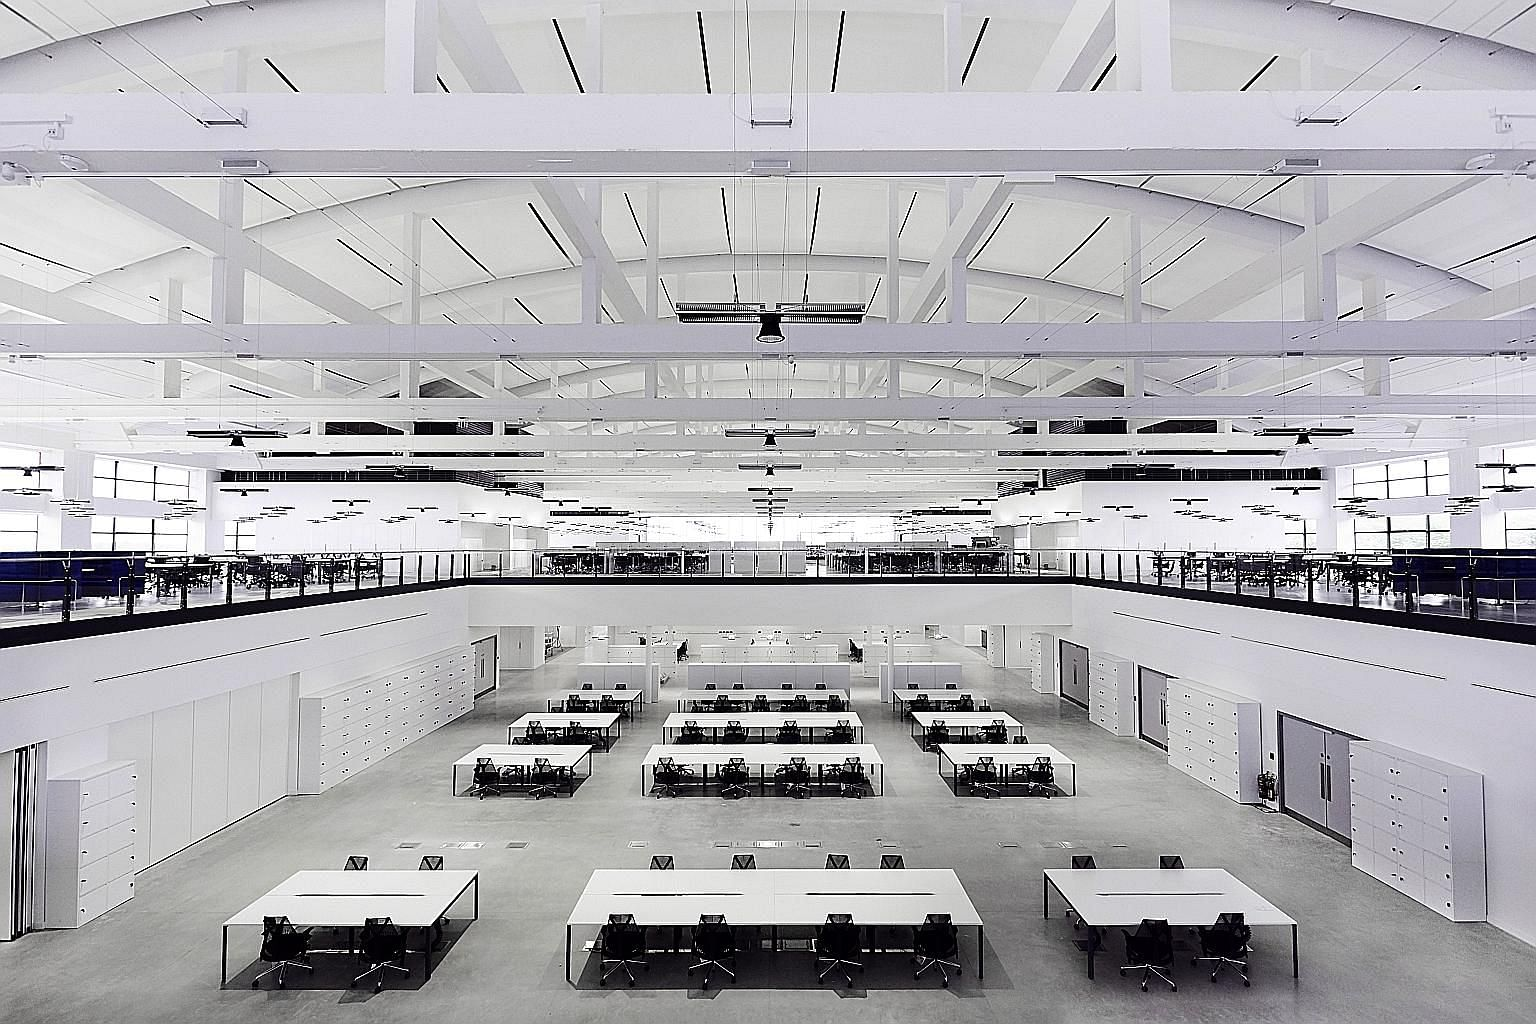 Dyson's Hullavington campus in Britain, where derelict airplane hangars were recently restored and transformed into modern workspaces. The campus had been earmarked as the development site for the firm's electric vehicle - complete with plans to inst